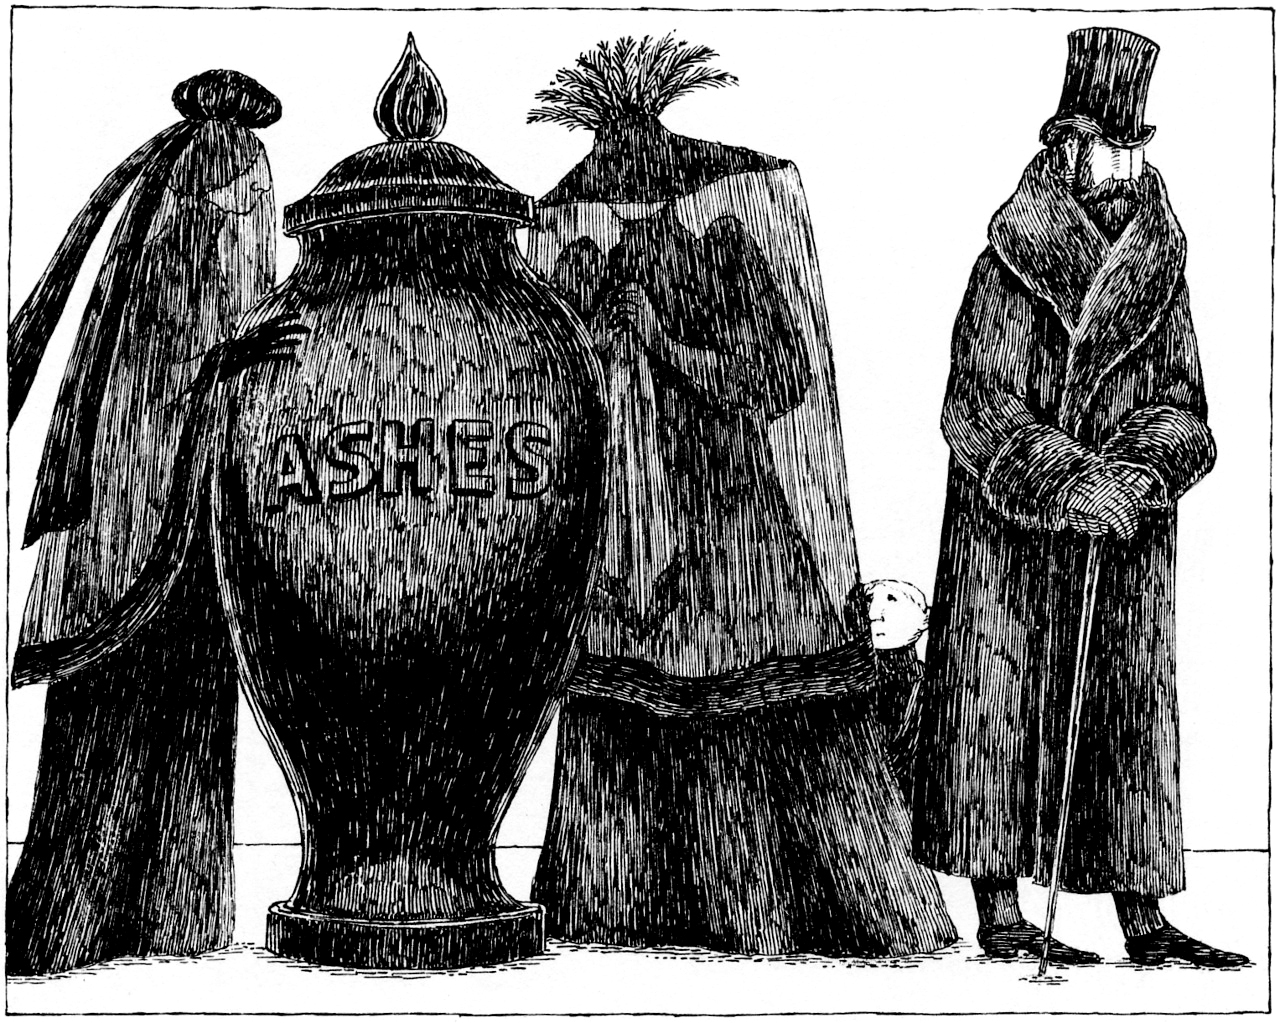 Ashes (Edward Gorey)